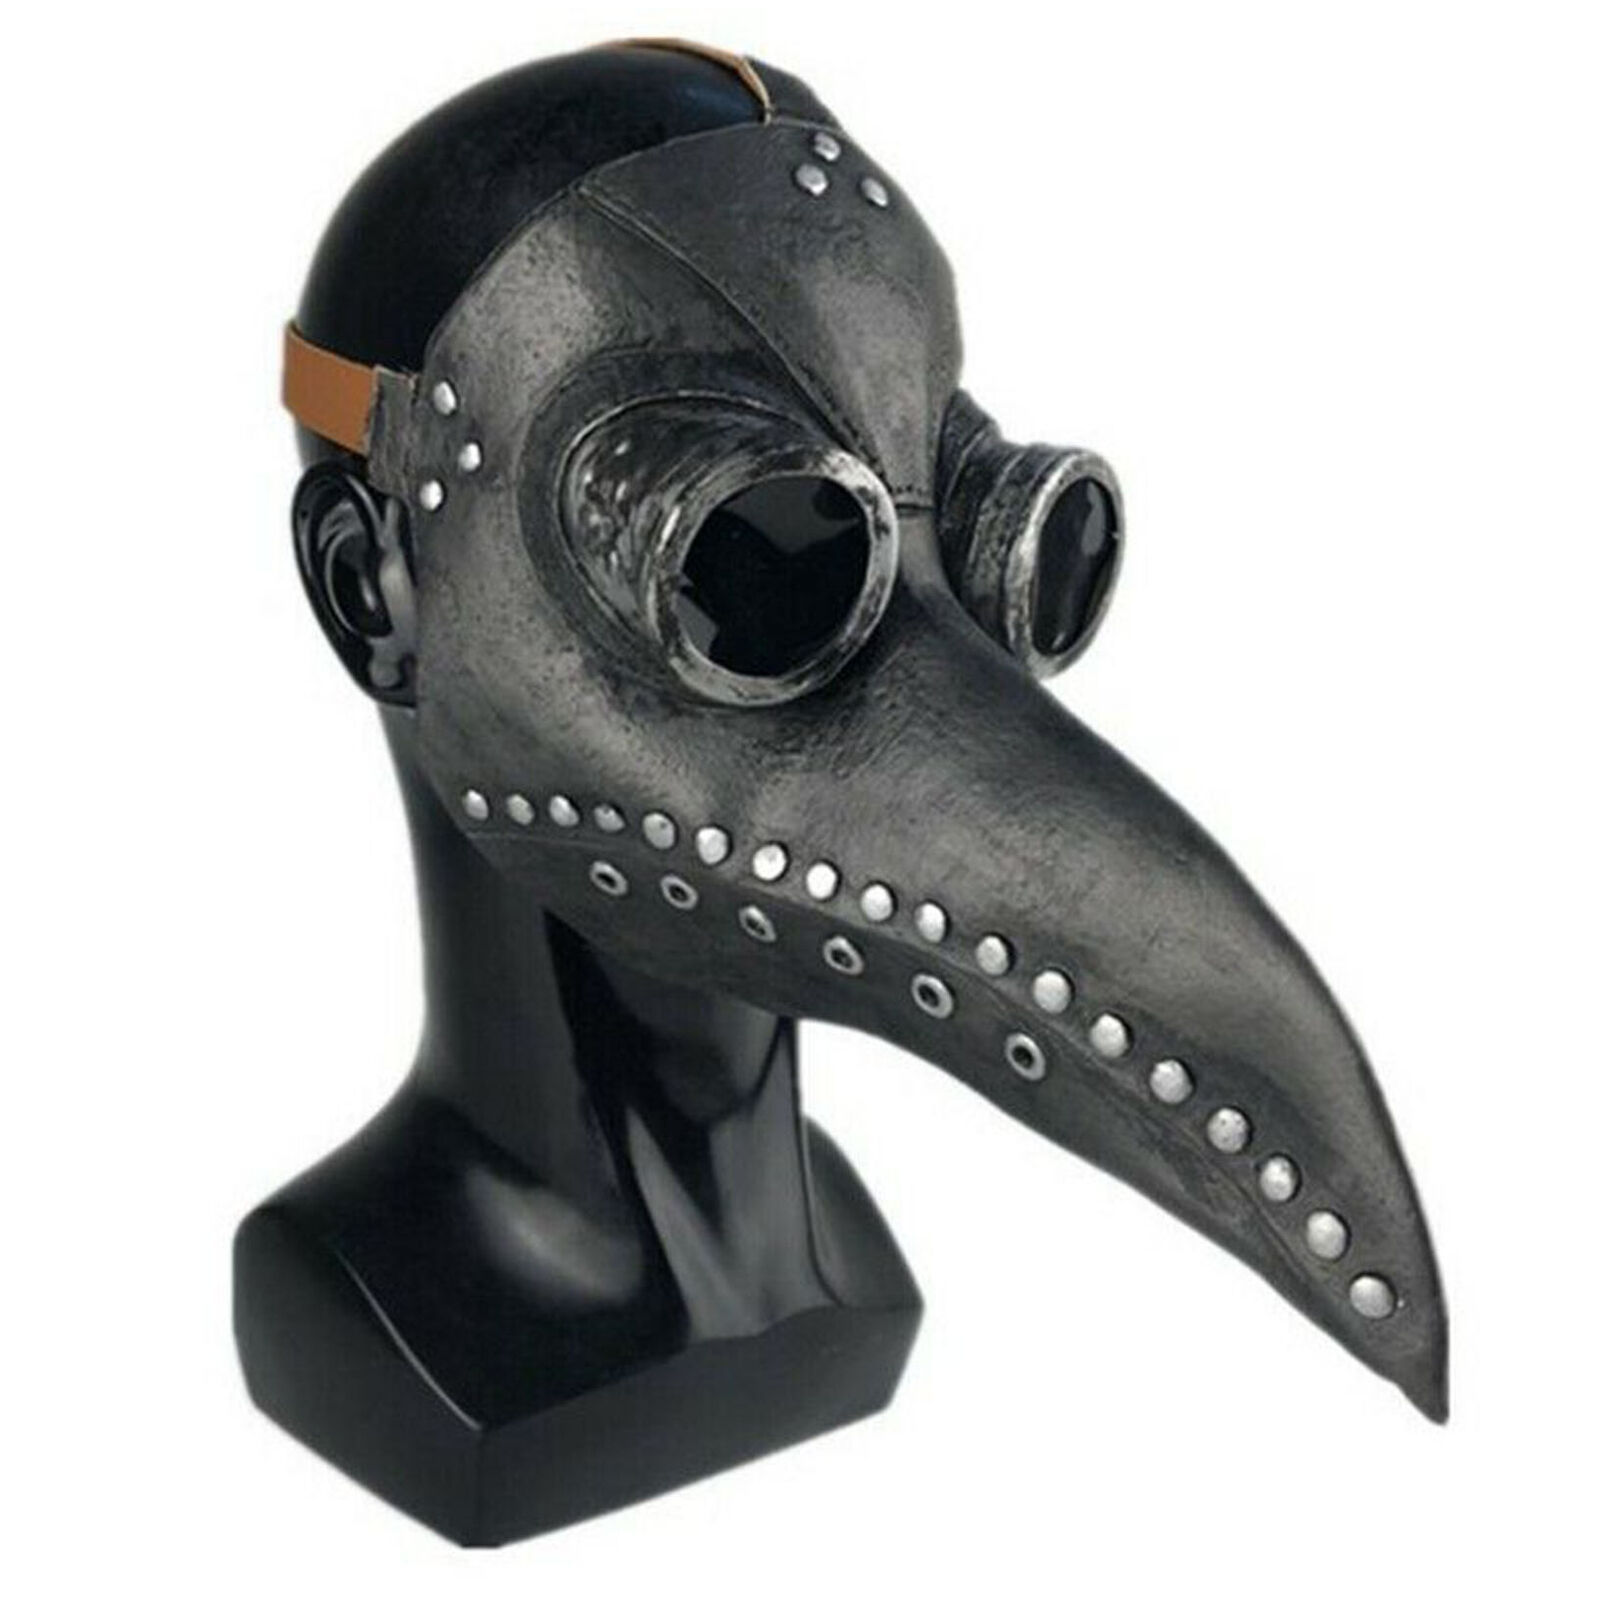 Halloween Party Mask Plague Doctor Cosplay Props Steampunk PU Leather Mask Black